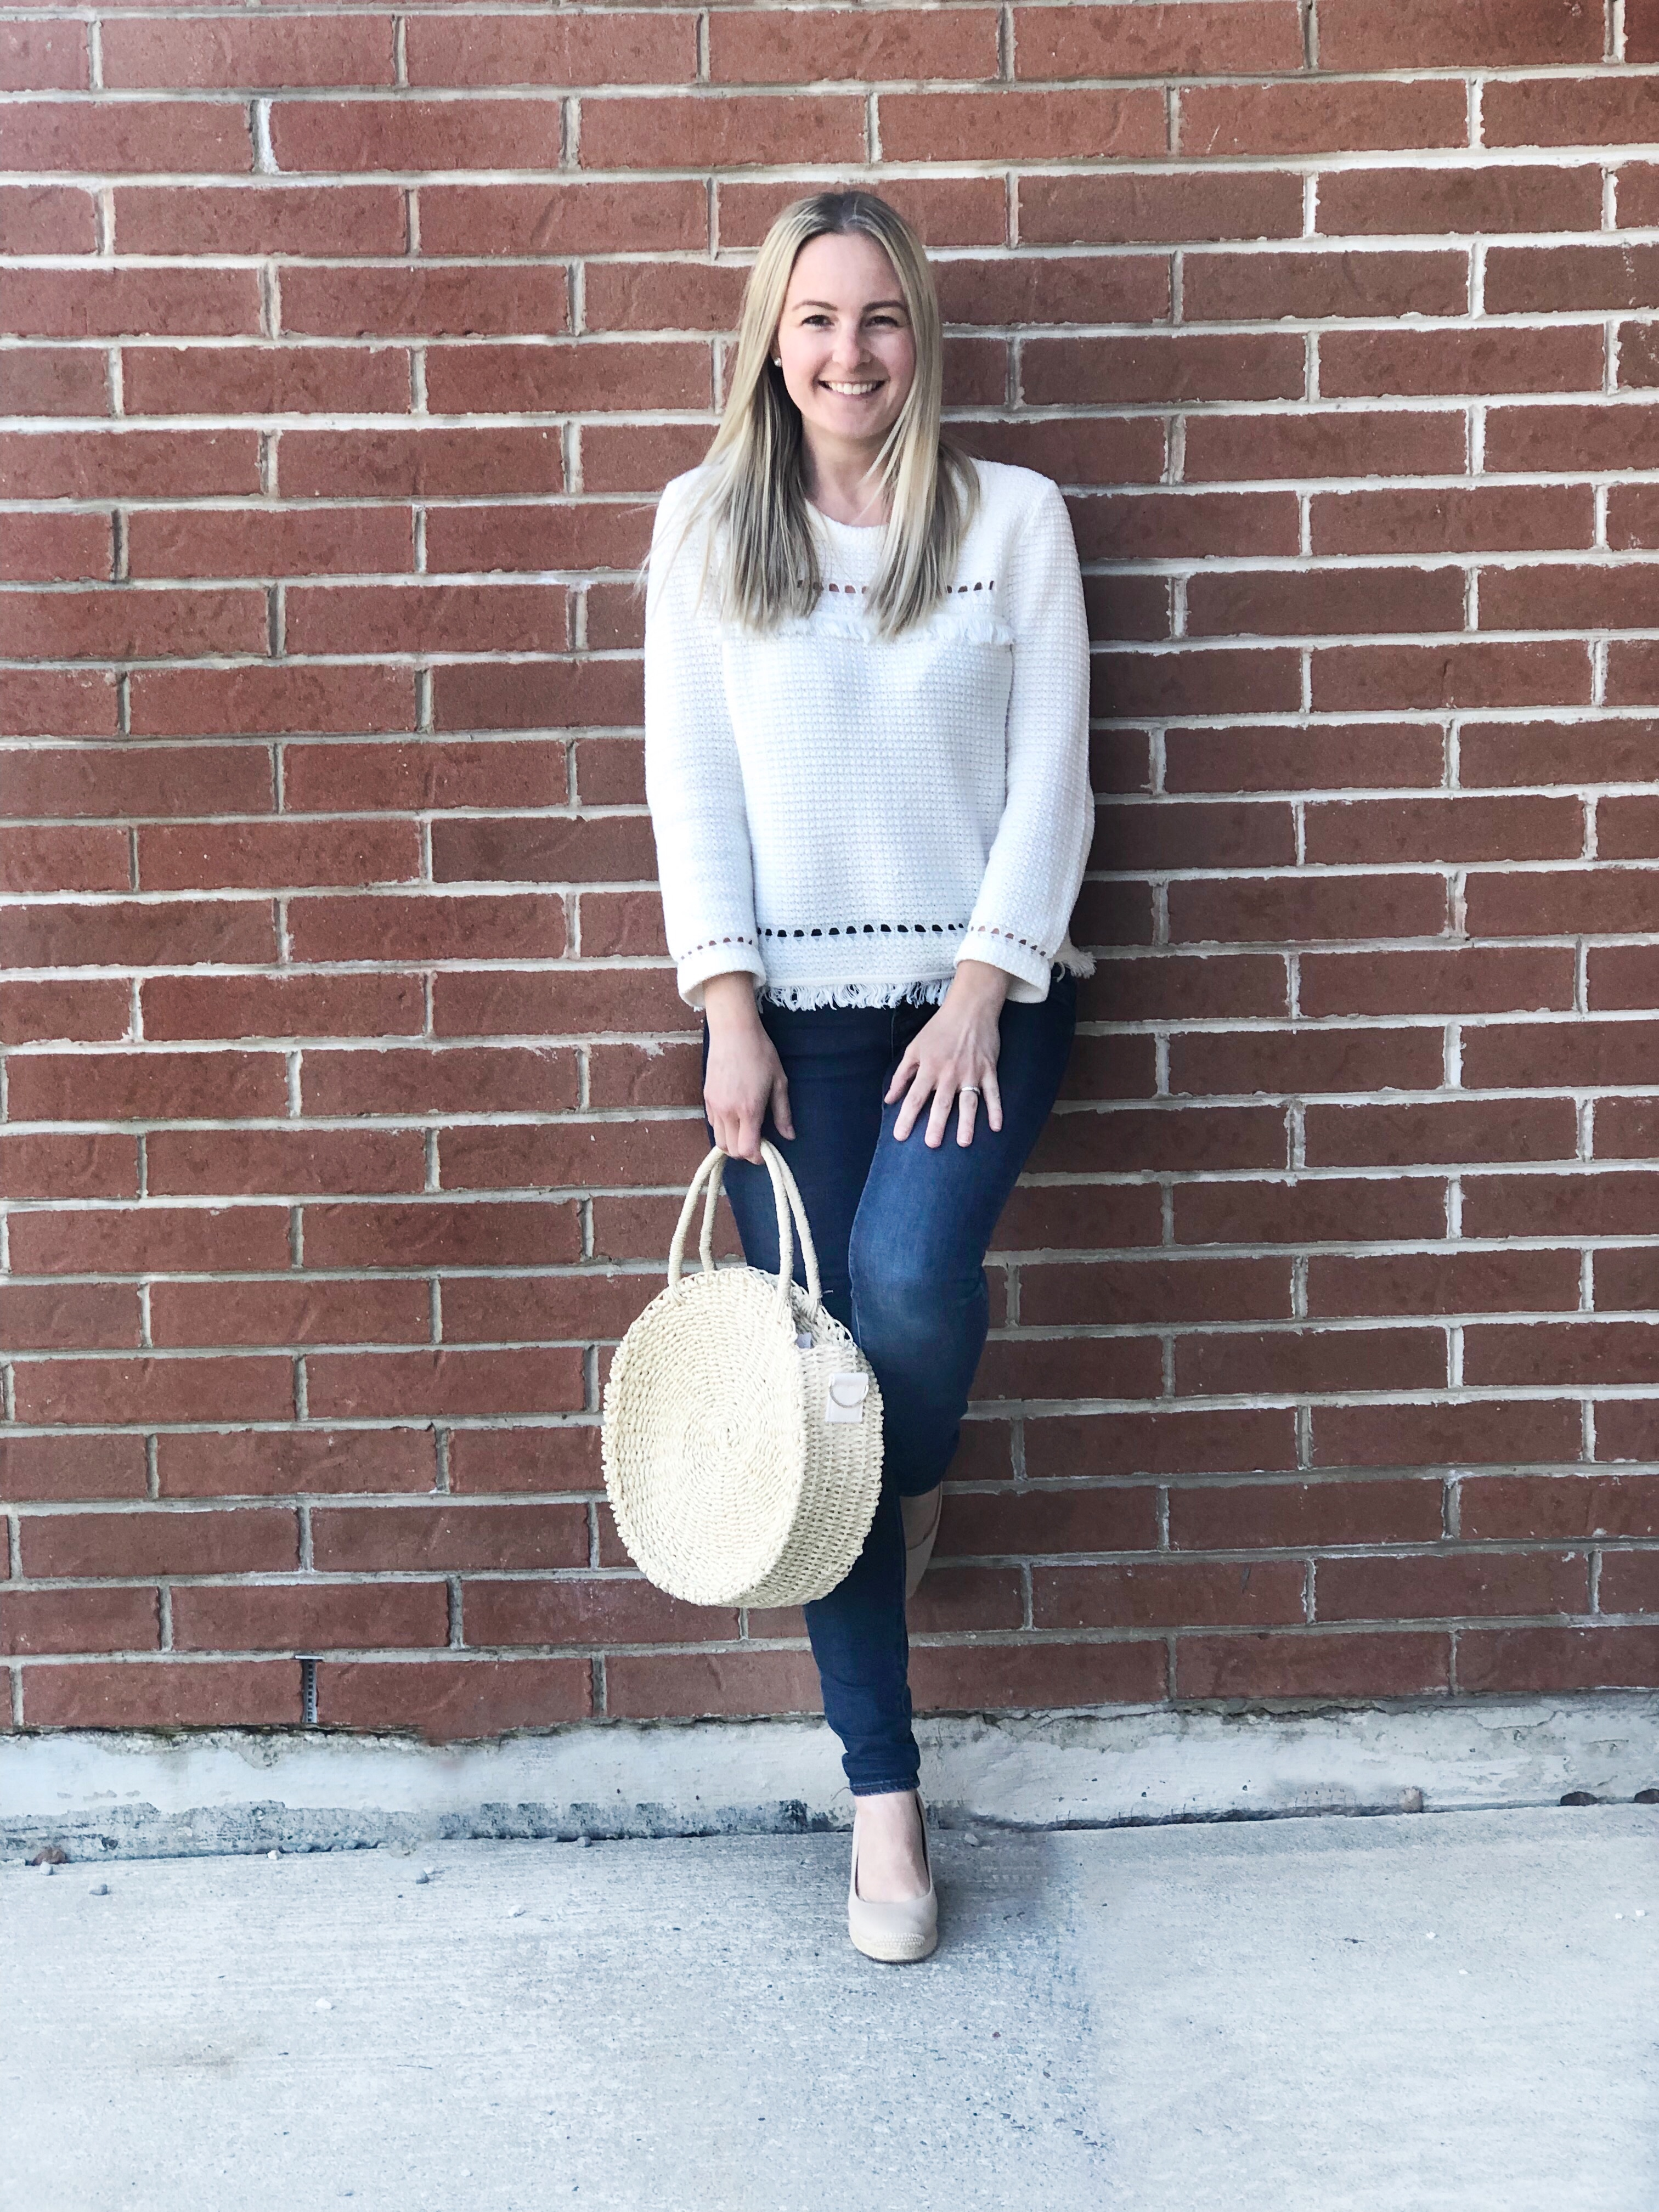 J Crew fringe sweater- Summer look on livin' life with style